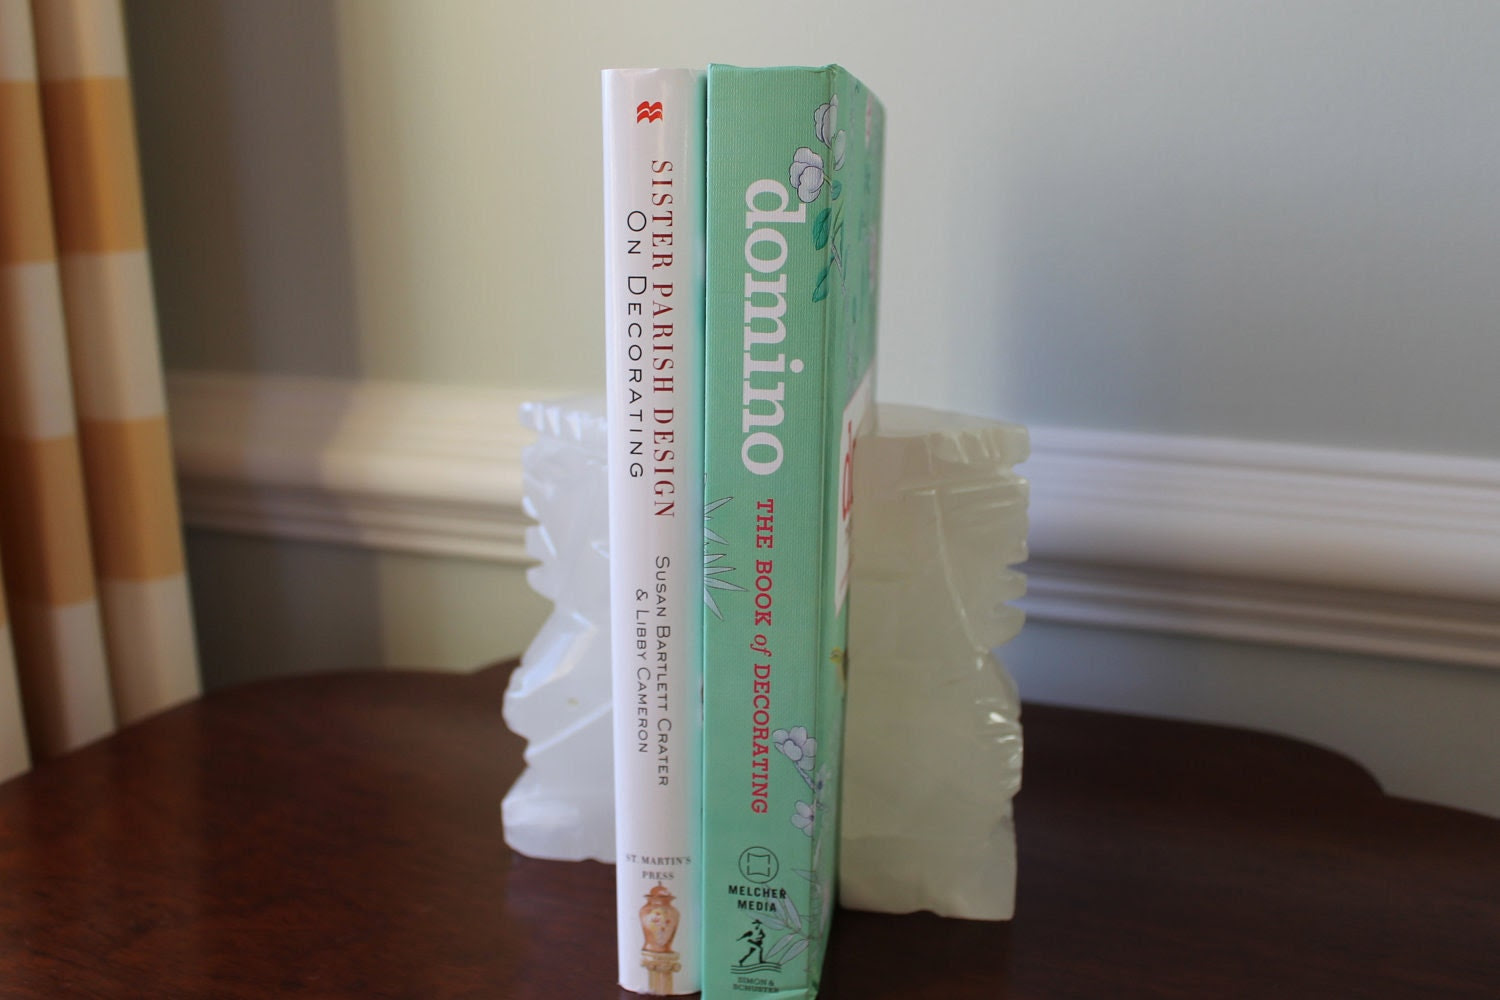 Carved marble bookends